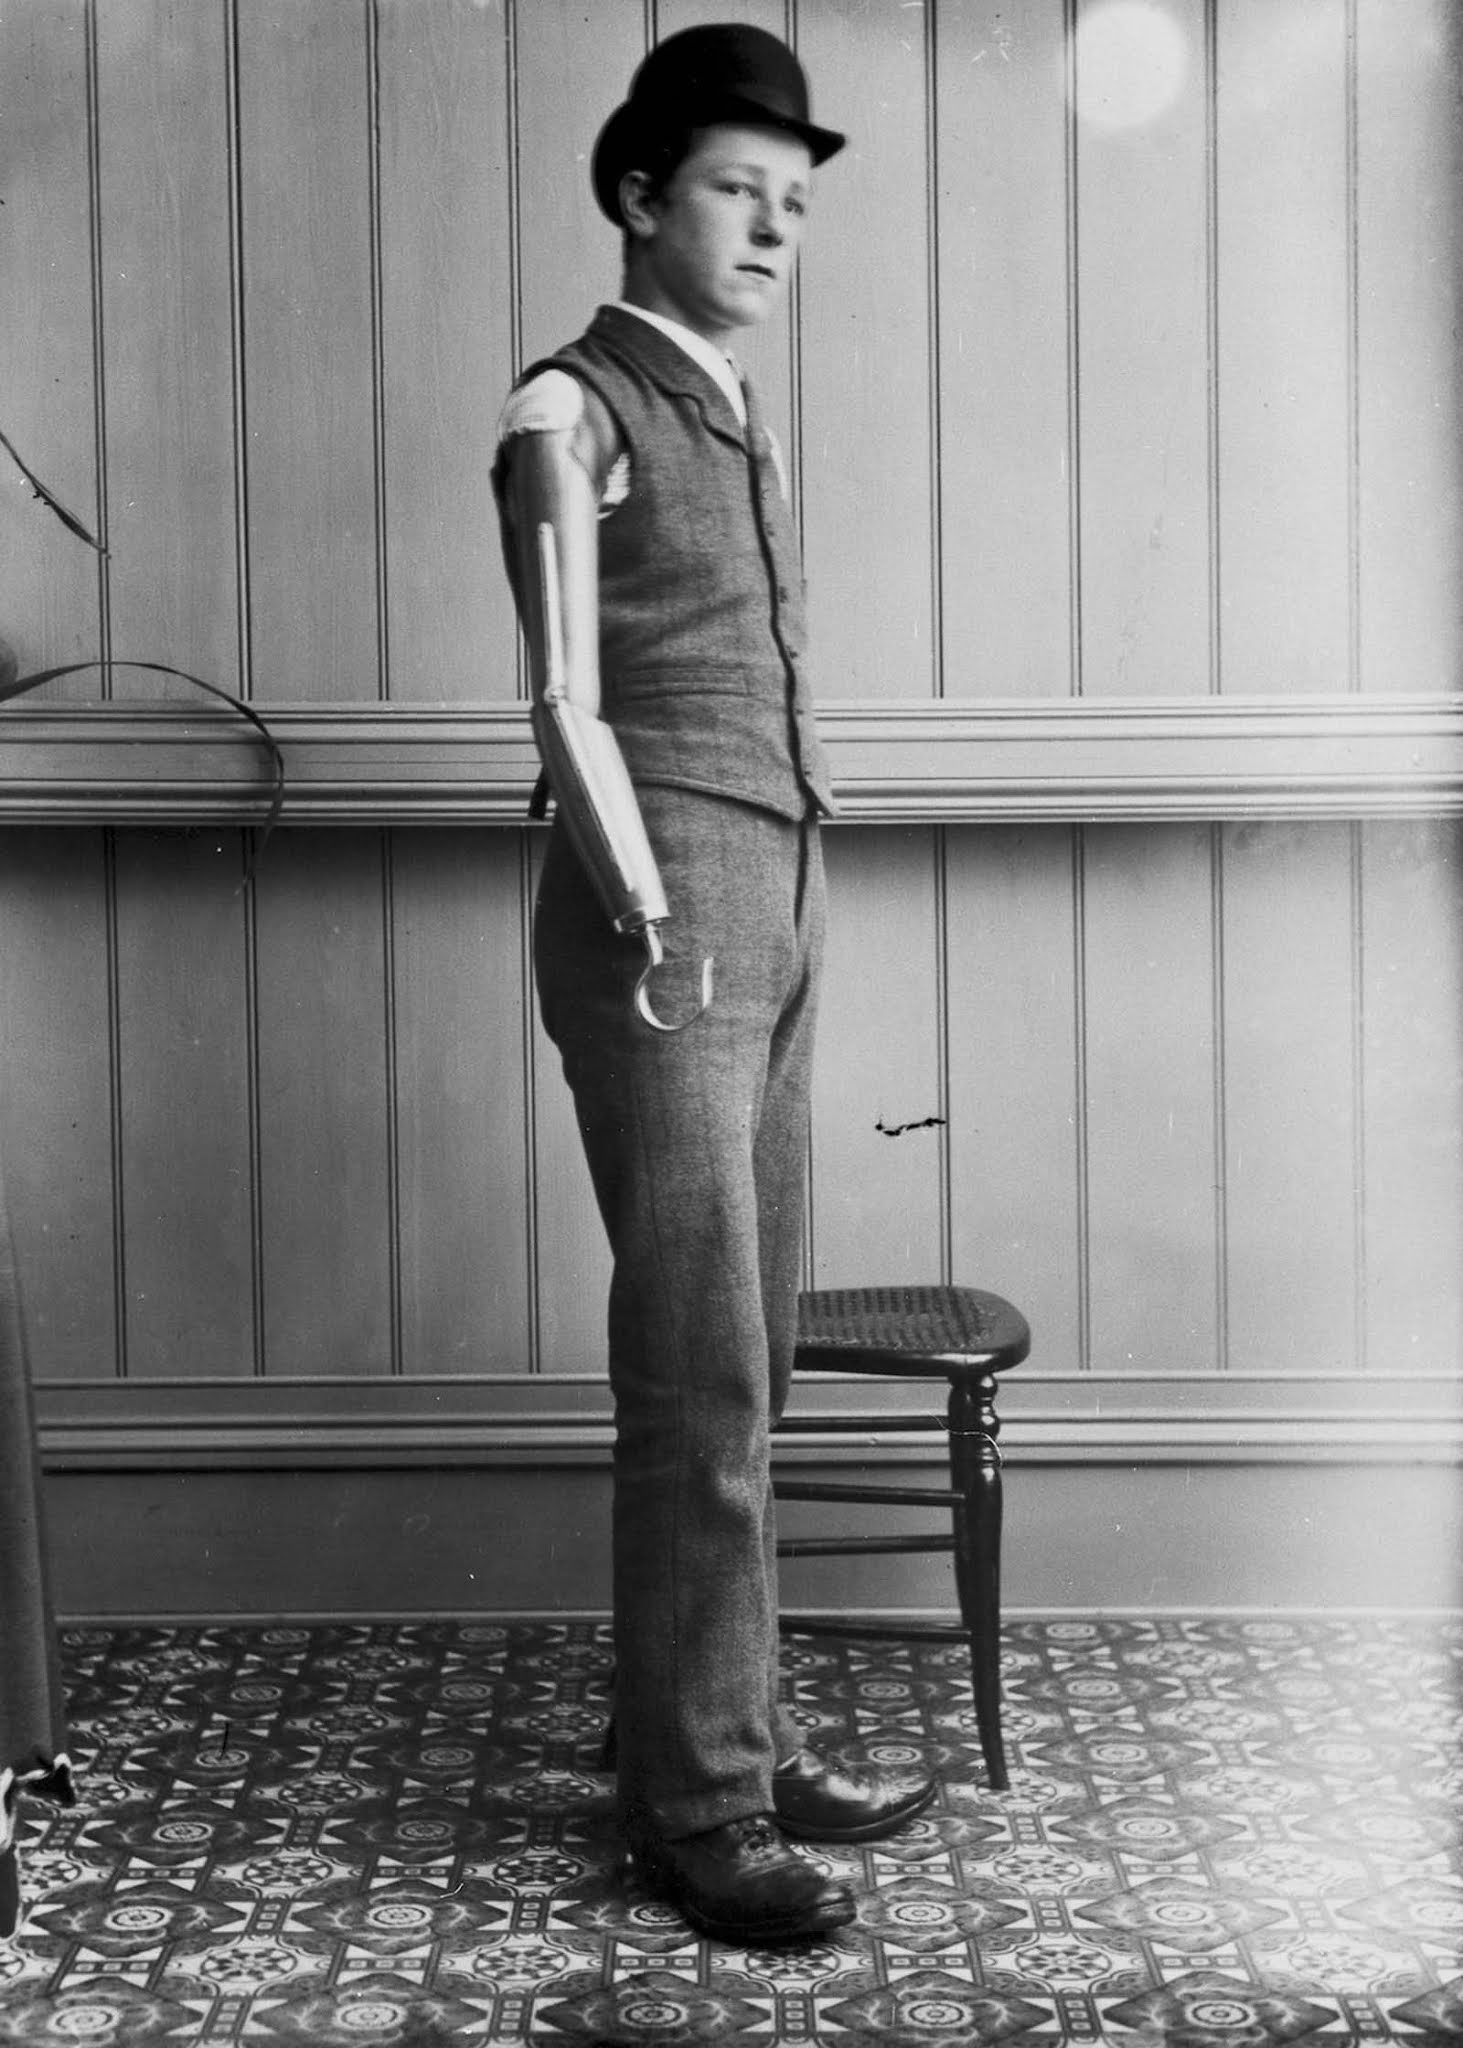 The extraordinary early prostheses made by James Gillingham, 1900